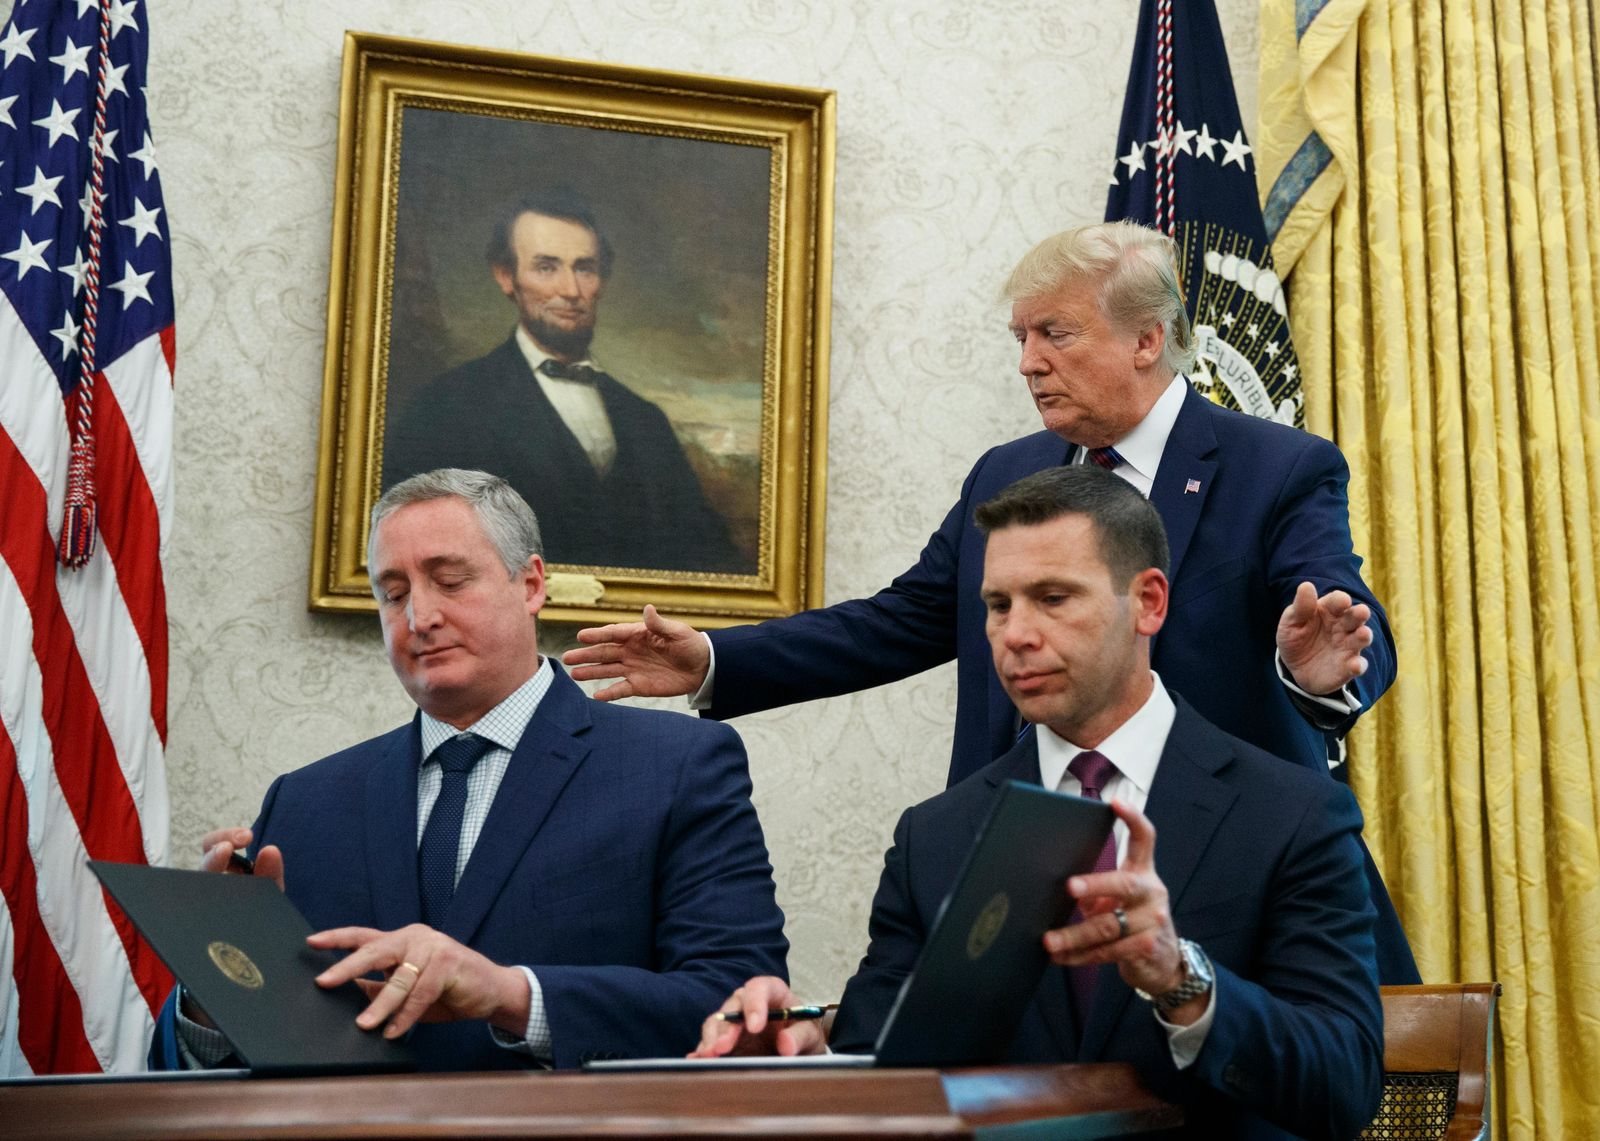 President Donald Trump, walks to acting Department of Homeland Security Secretary Kevin McAleenan, seated right, and Guatemalan Interior Minister Enrique Degenhart in the Oval Office of the White House in Washington. (AP Photo/Carolyn Kaster)